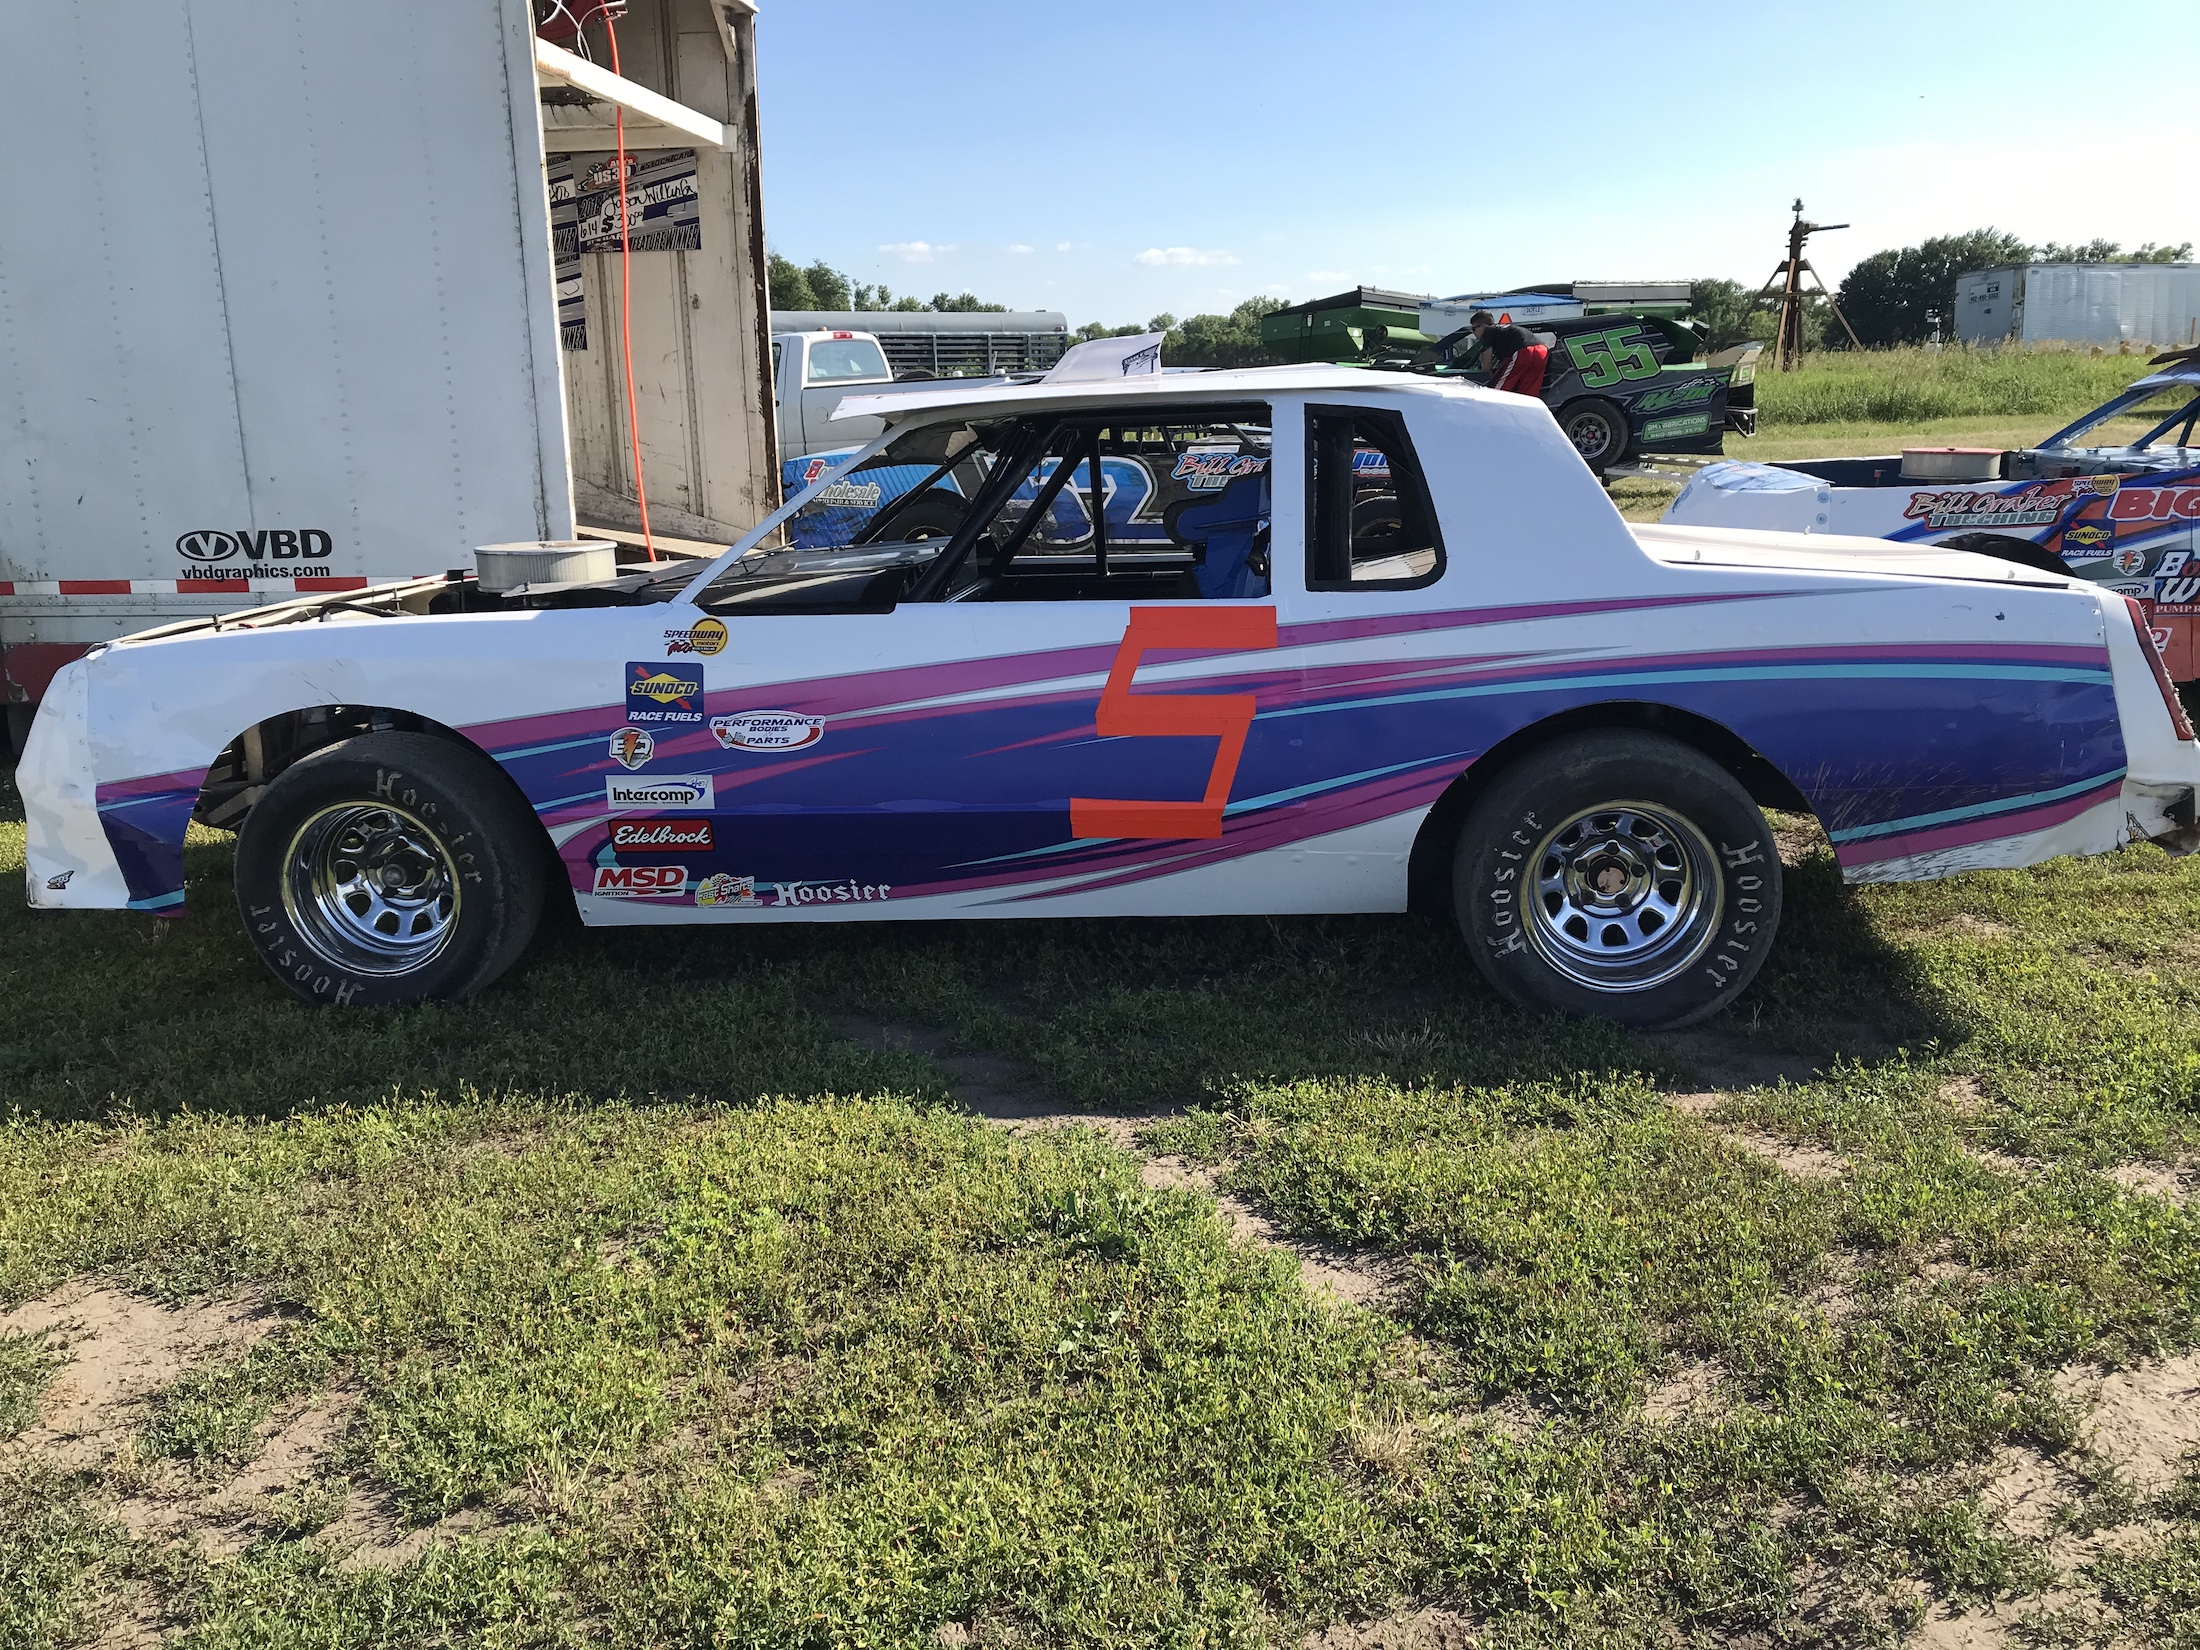 Cams car - Young IMCA Driver On The Rise